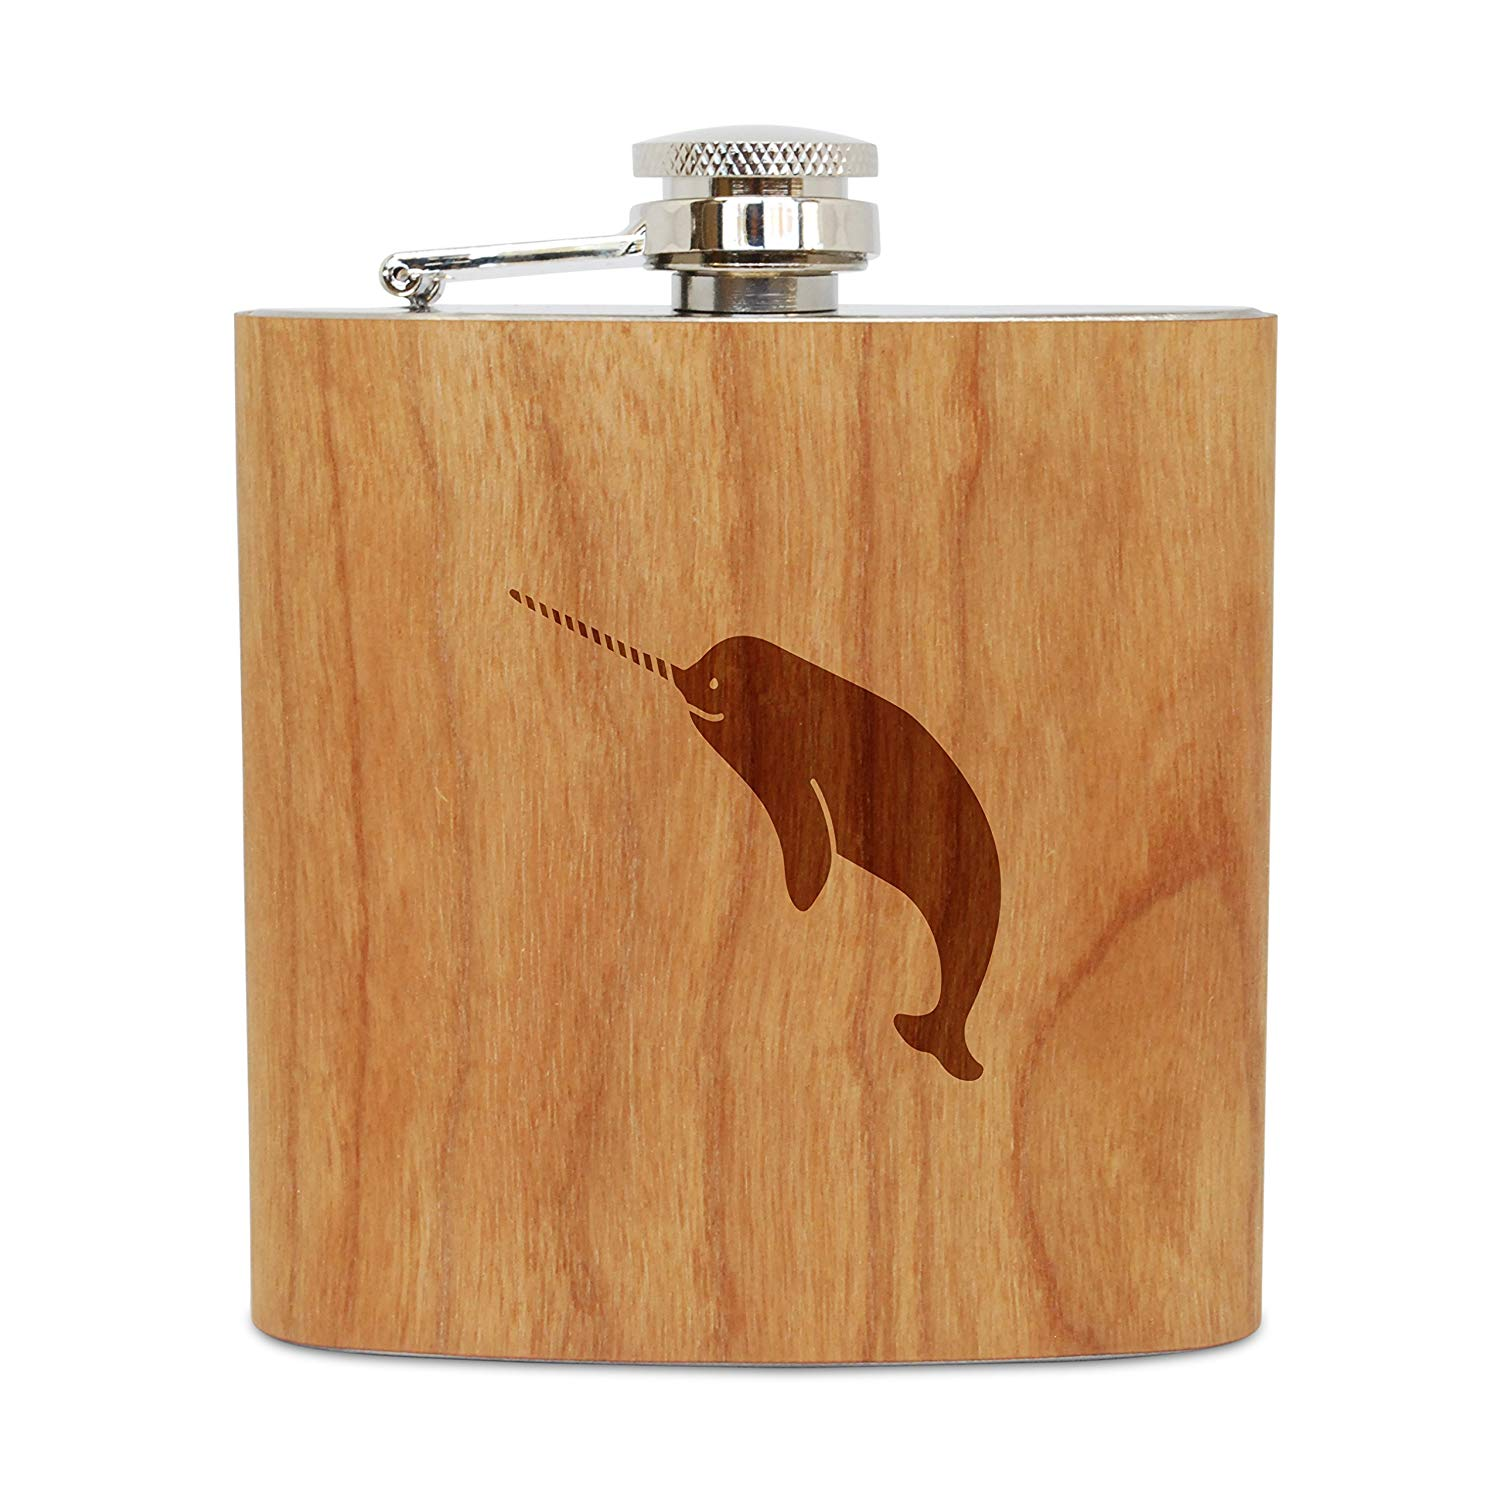 WOODEN ACCESSORIES COMPANY Cherry Wood Flask With Stainless Steel Body - Laser Engraved Flask With Narwhal Design - 6 Oz Wood Hip Flask Handmade In USA